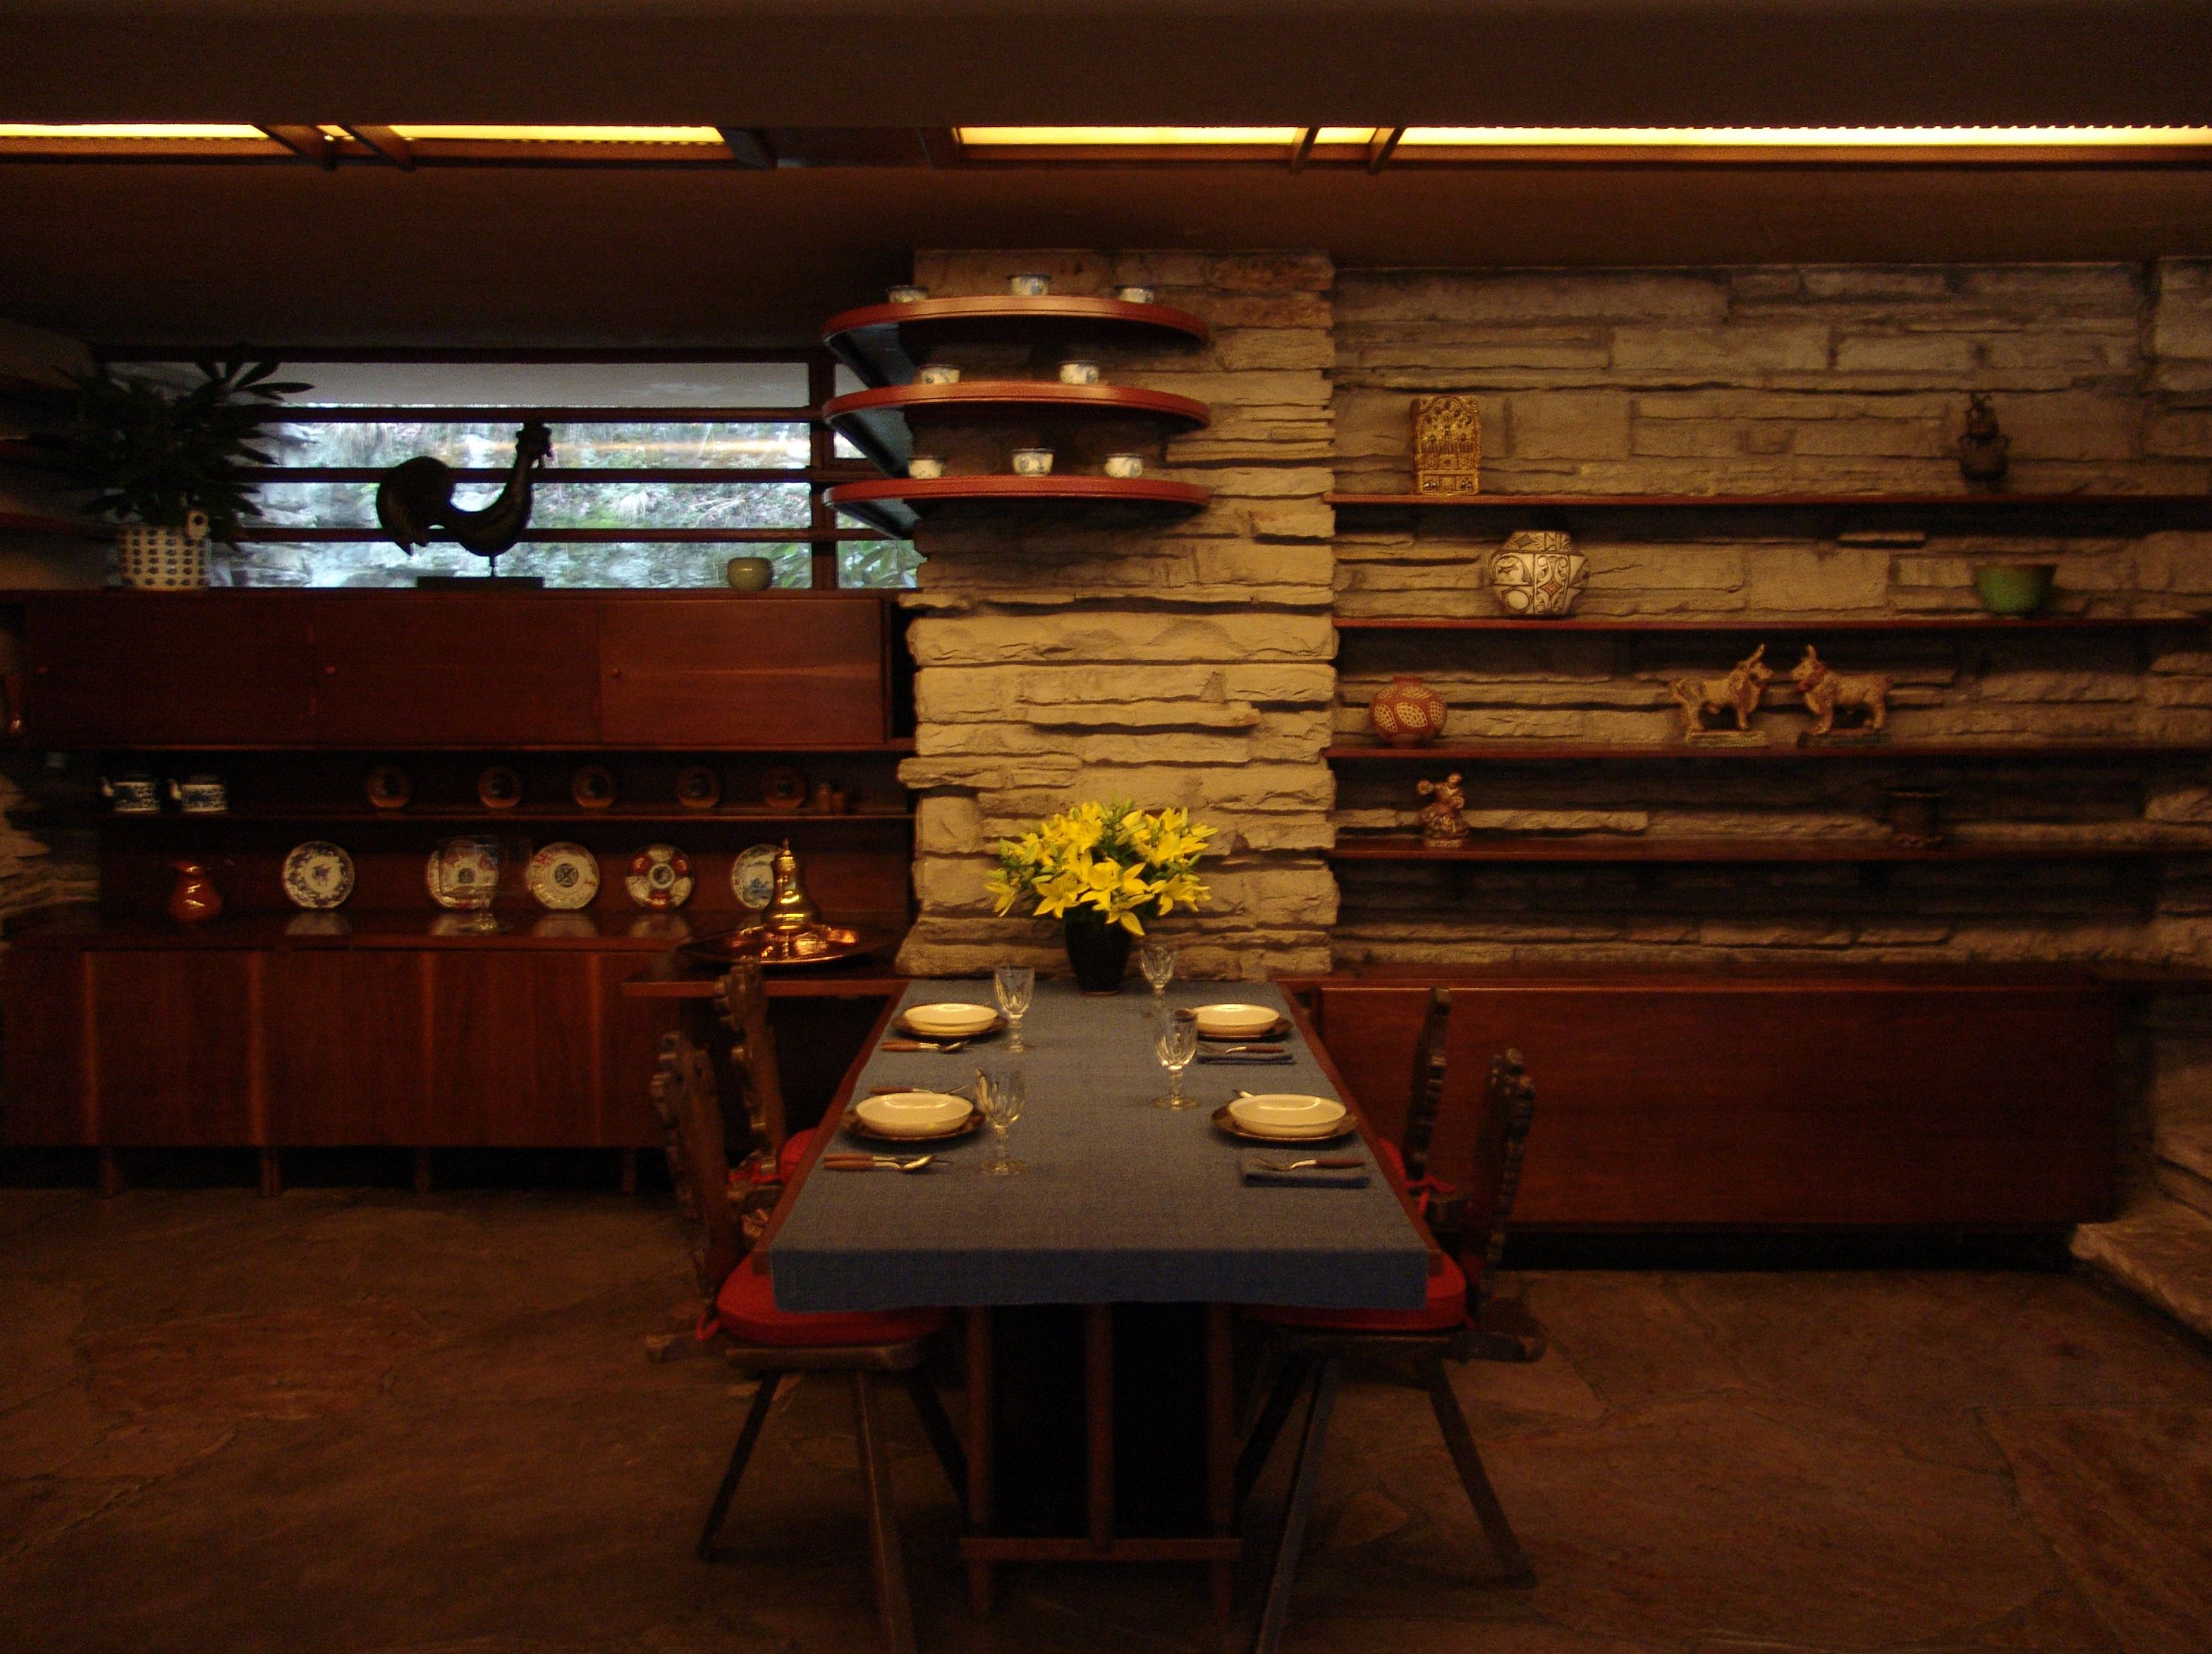 frank lloyd wright's falling waters house images interior | file